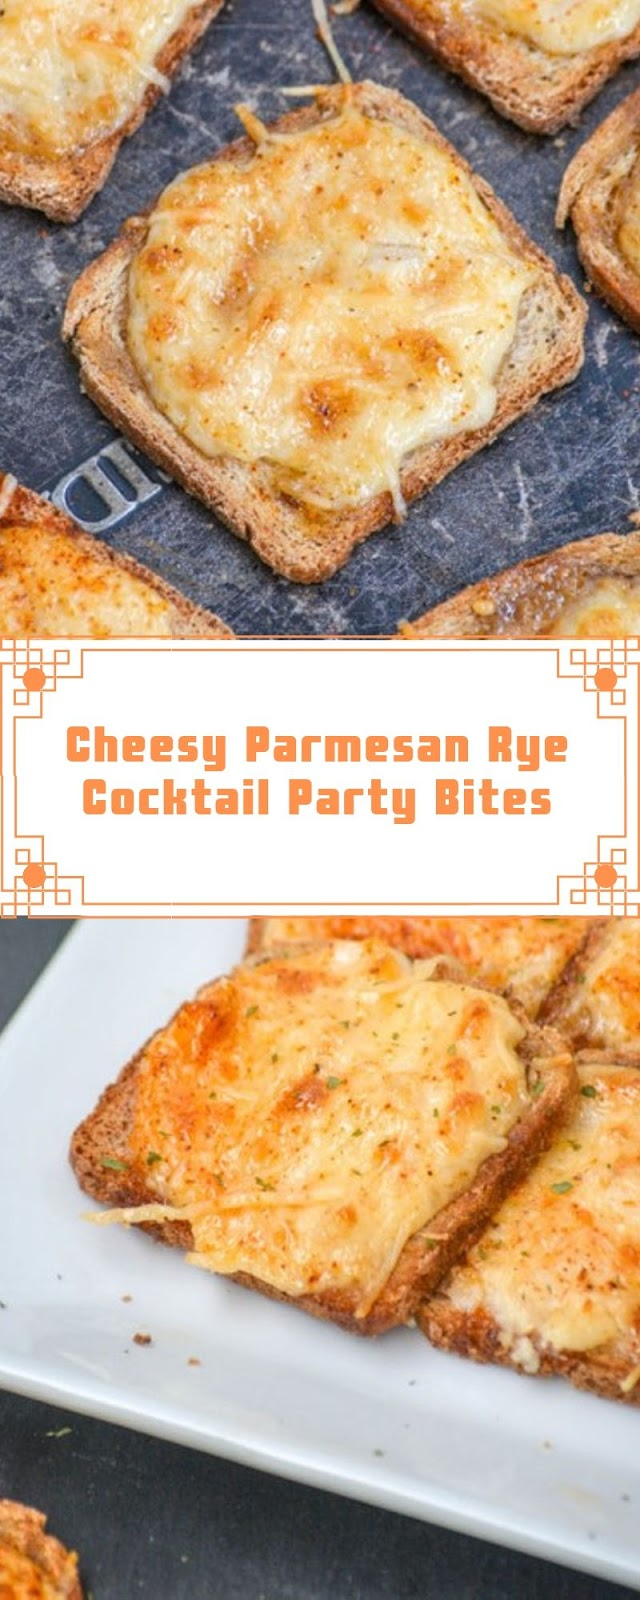 Cheesy Parmesan Rye Cocktail Party Bites